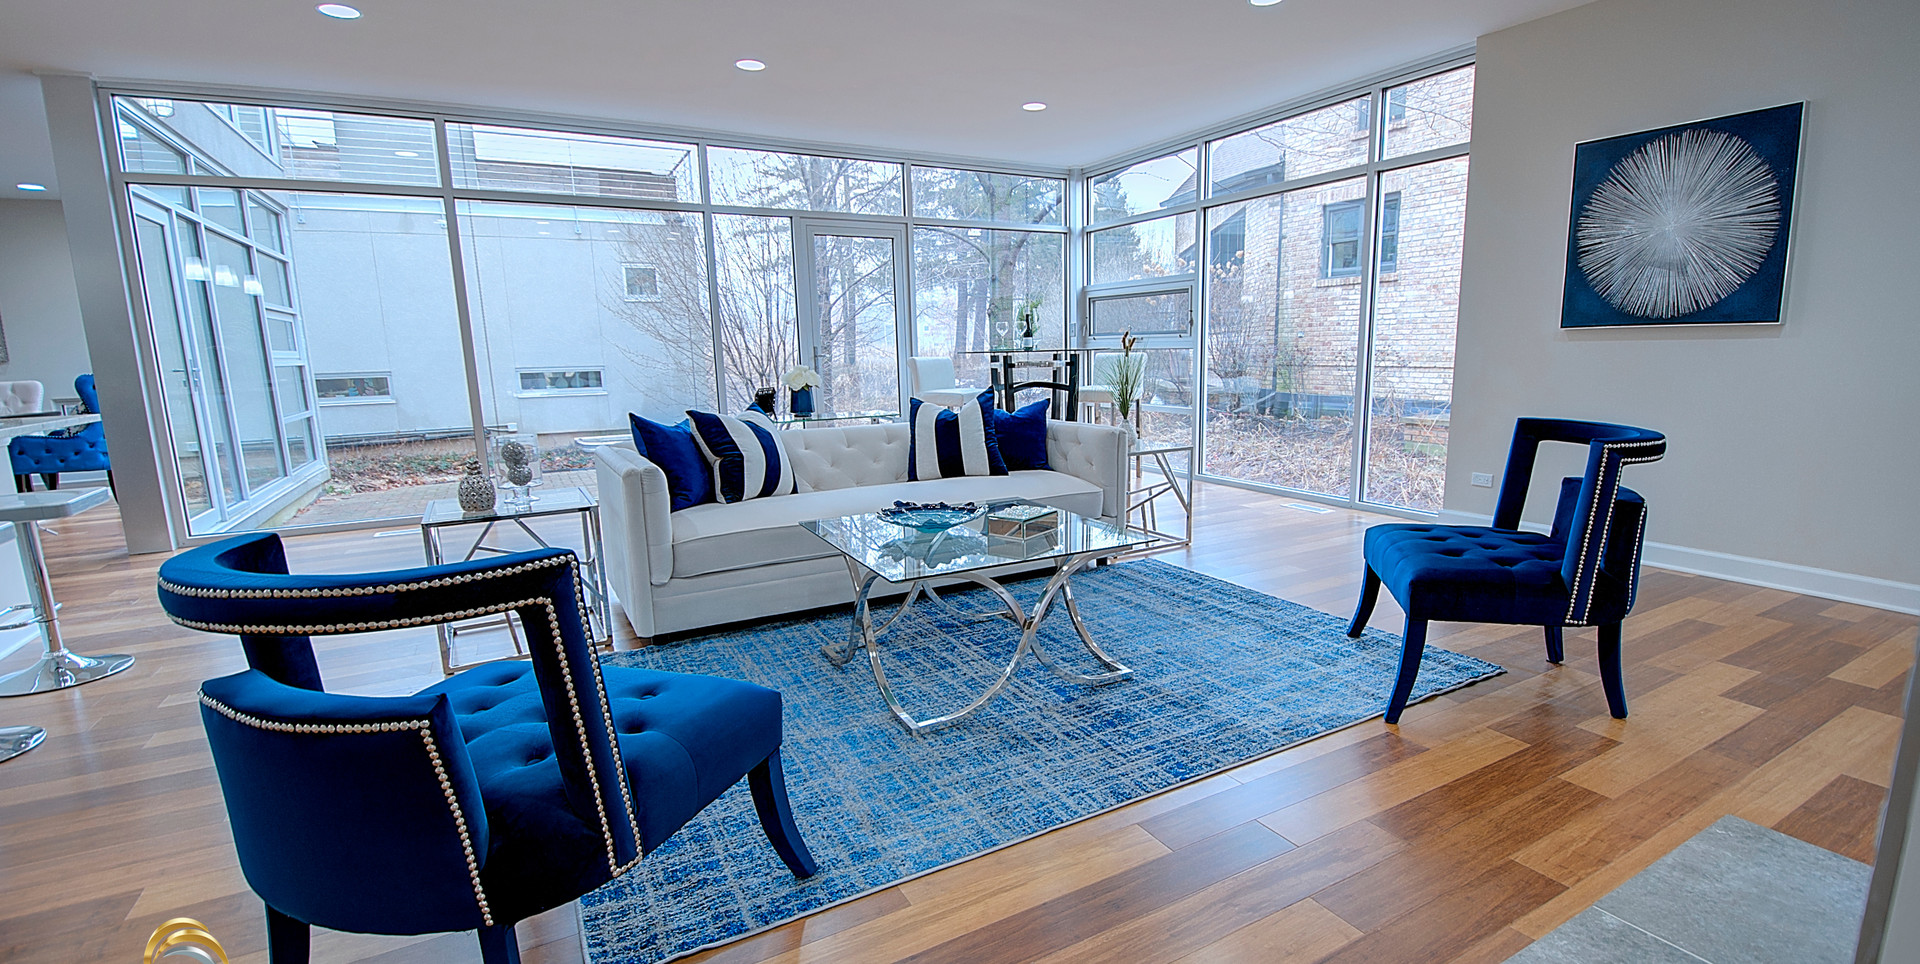 Living Room in Countryside designed by MRM Home Design.jpg